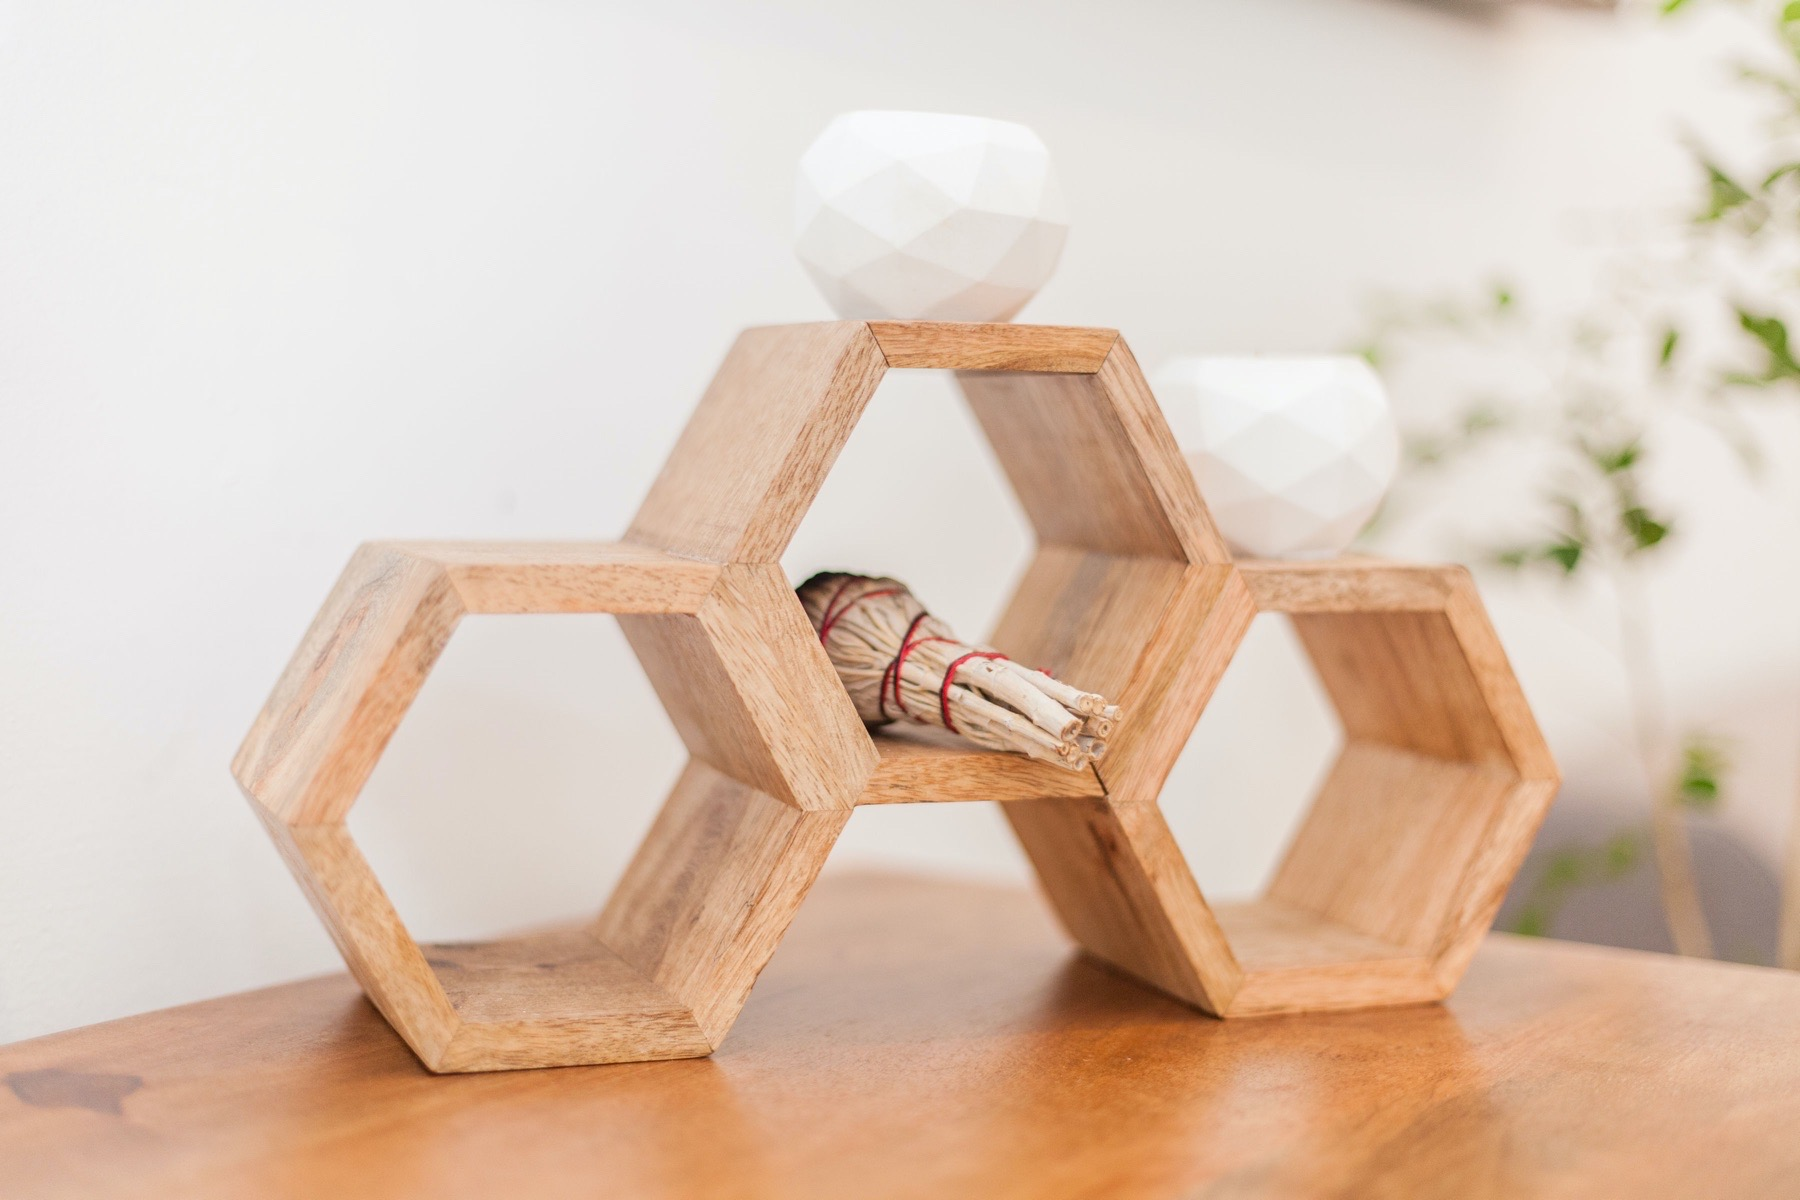 Geometric stacked object.